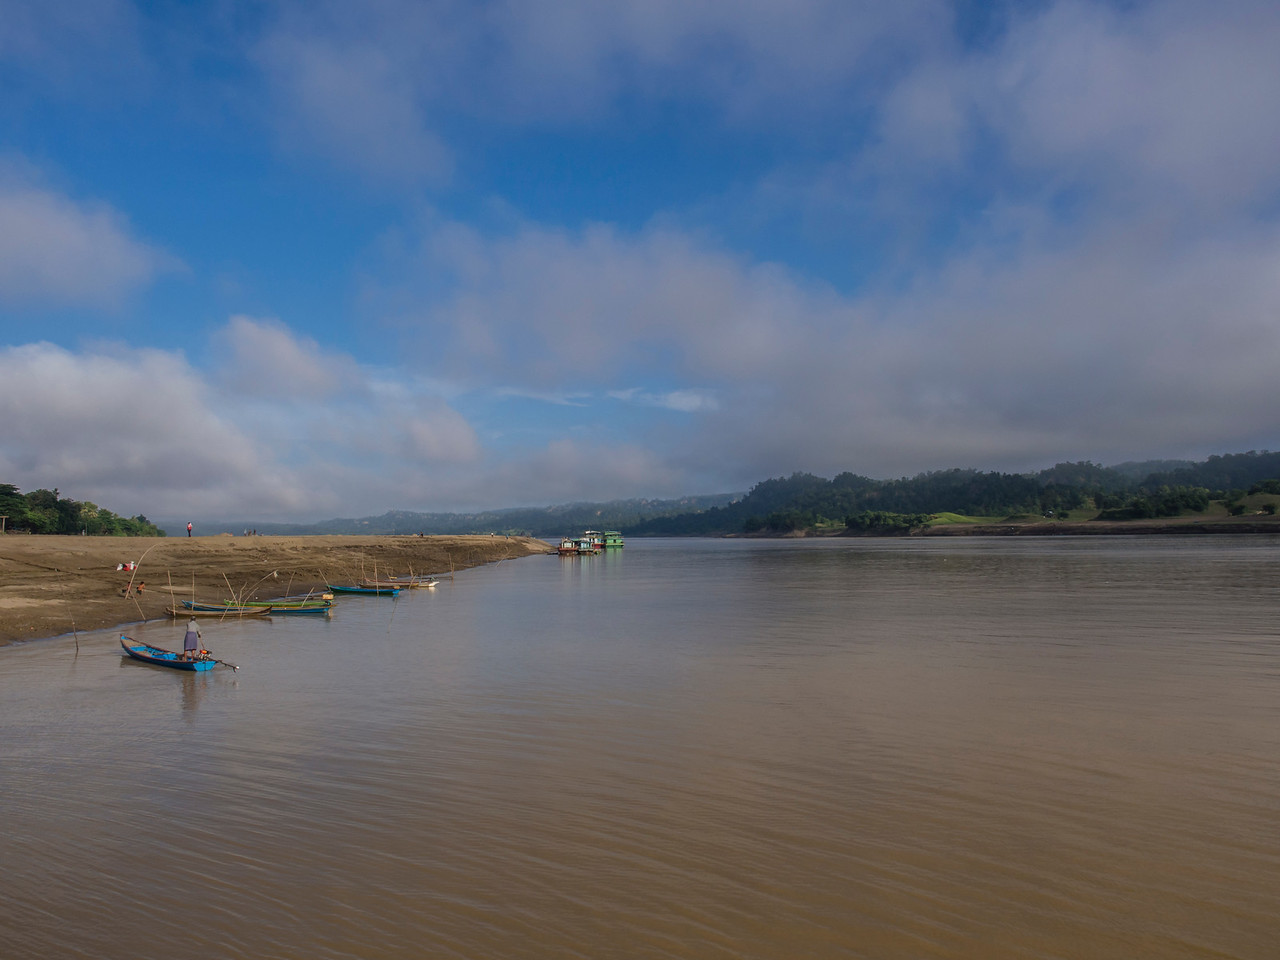 Morning on the Chindwin River, Myanmar